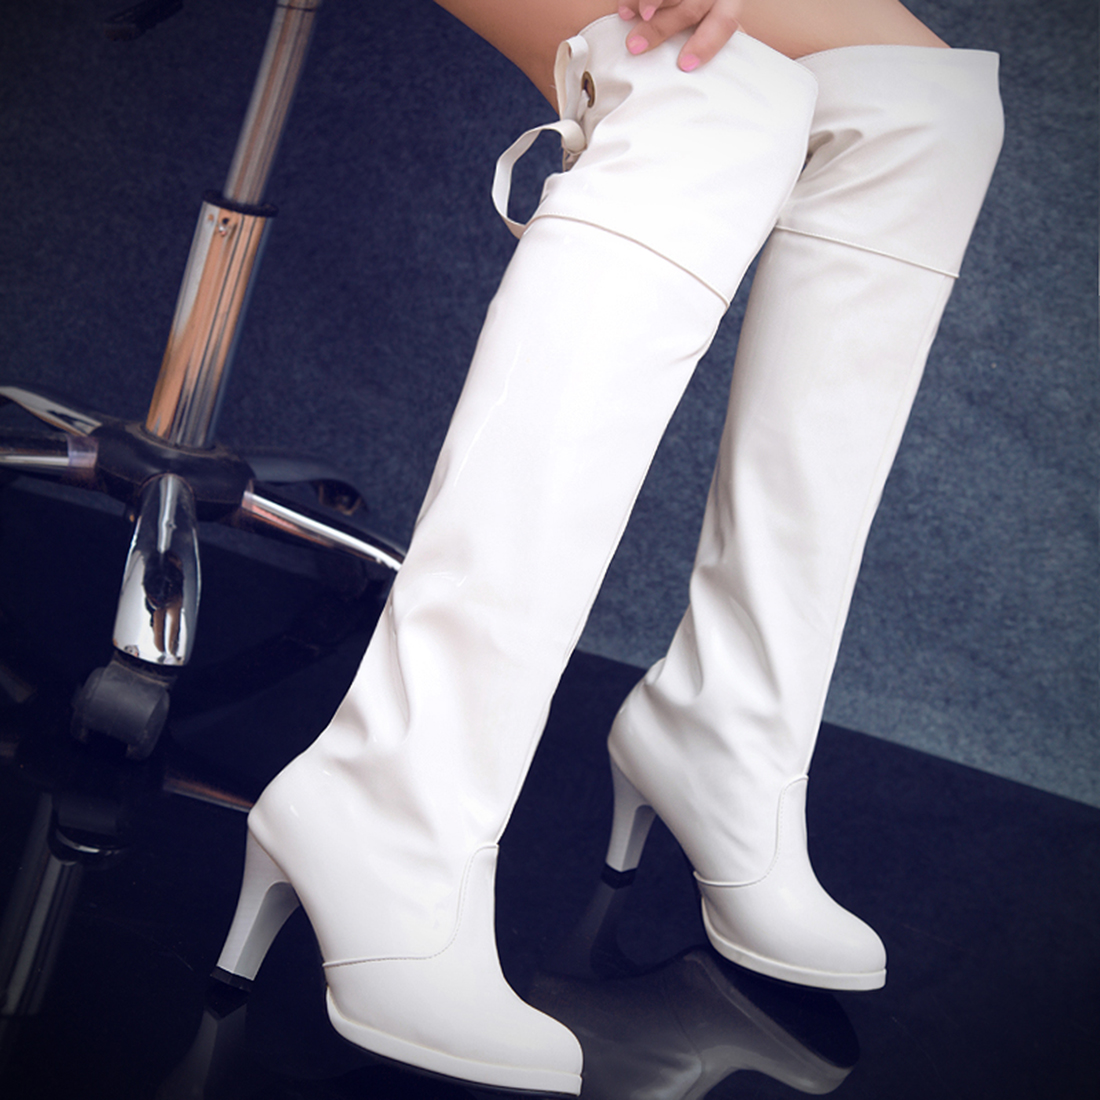 Clubwear High Heel Thigh Heel Over The Knee Boots Sexy Women Lady Martin Boots Patent Leather Gothic Shoes white red black витрина однодверная правая роза